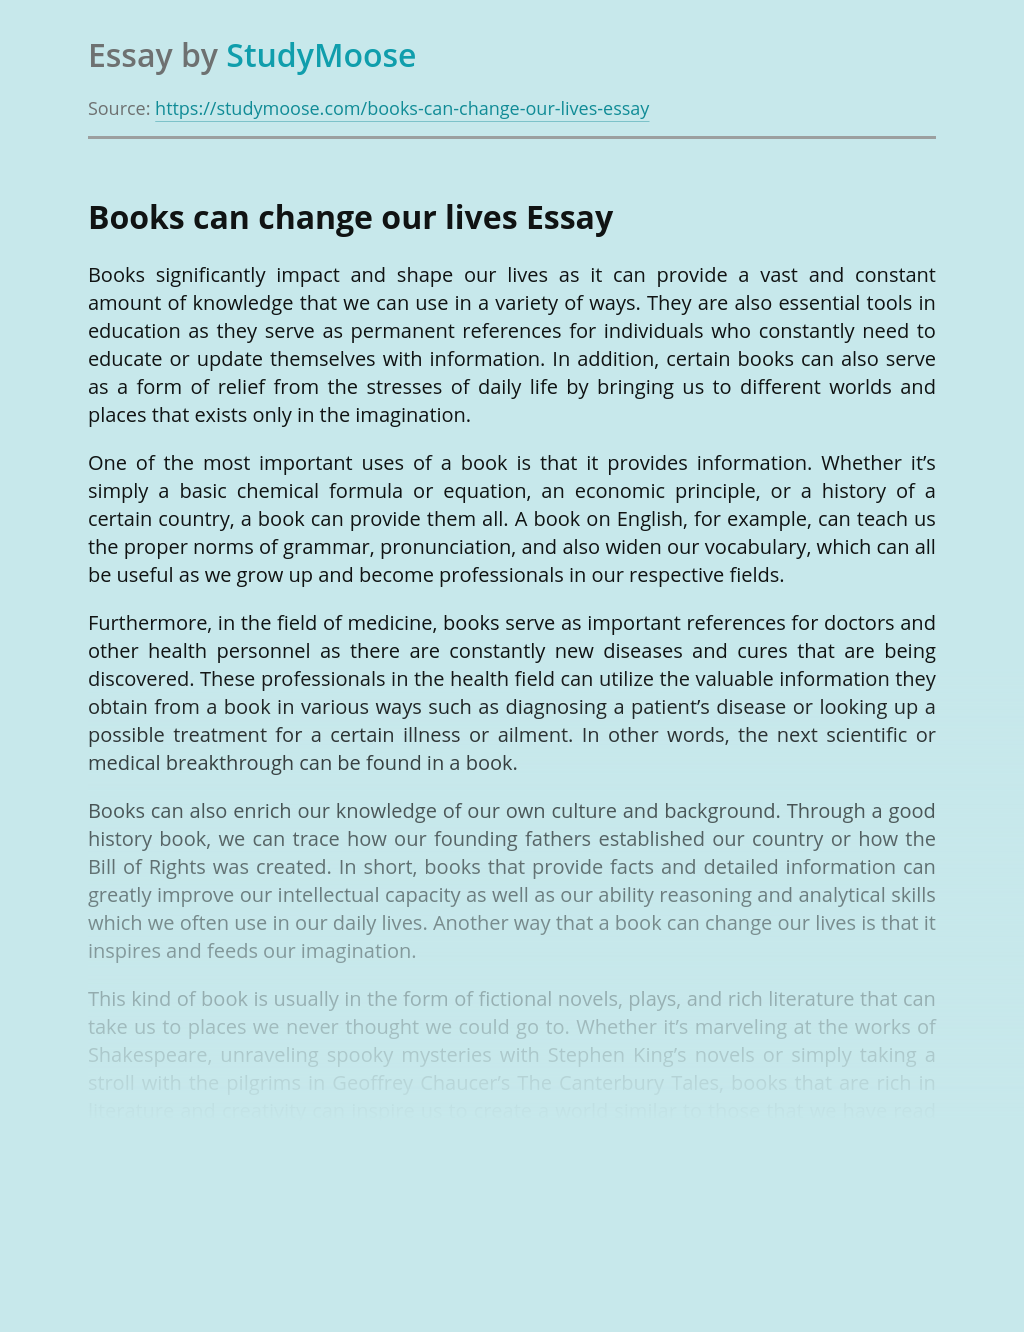 Books can change our lives